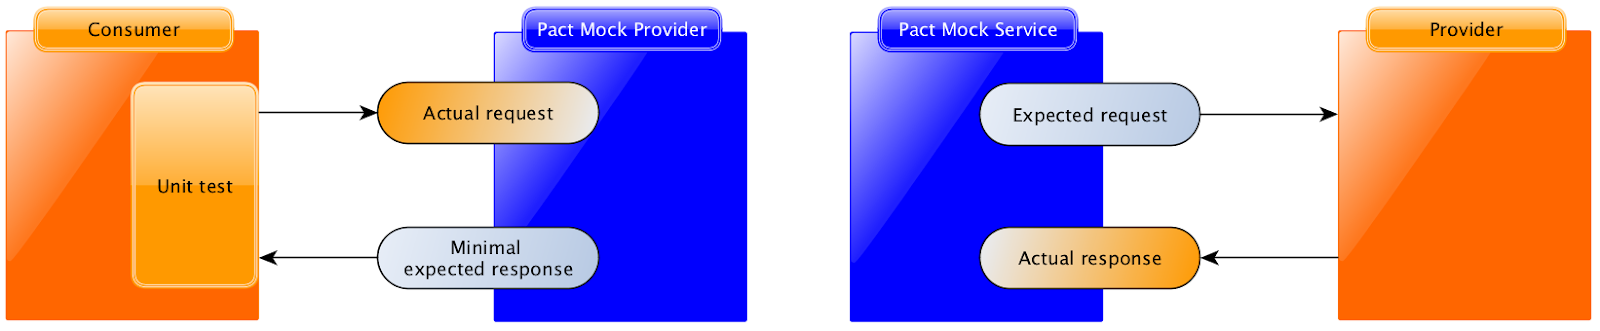 Pact test and verify